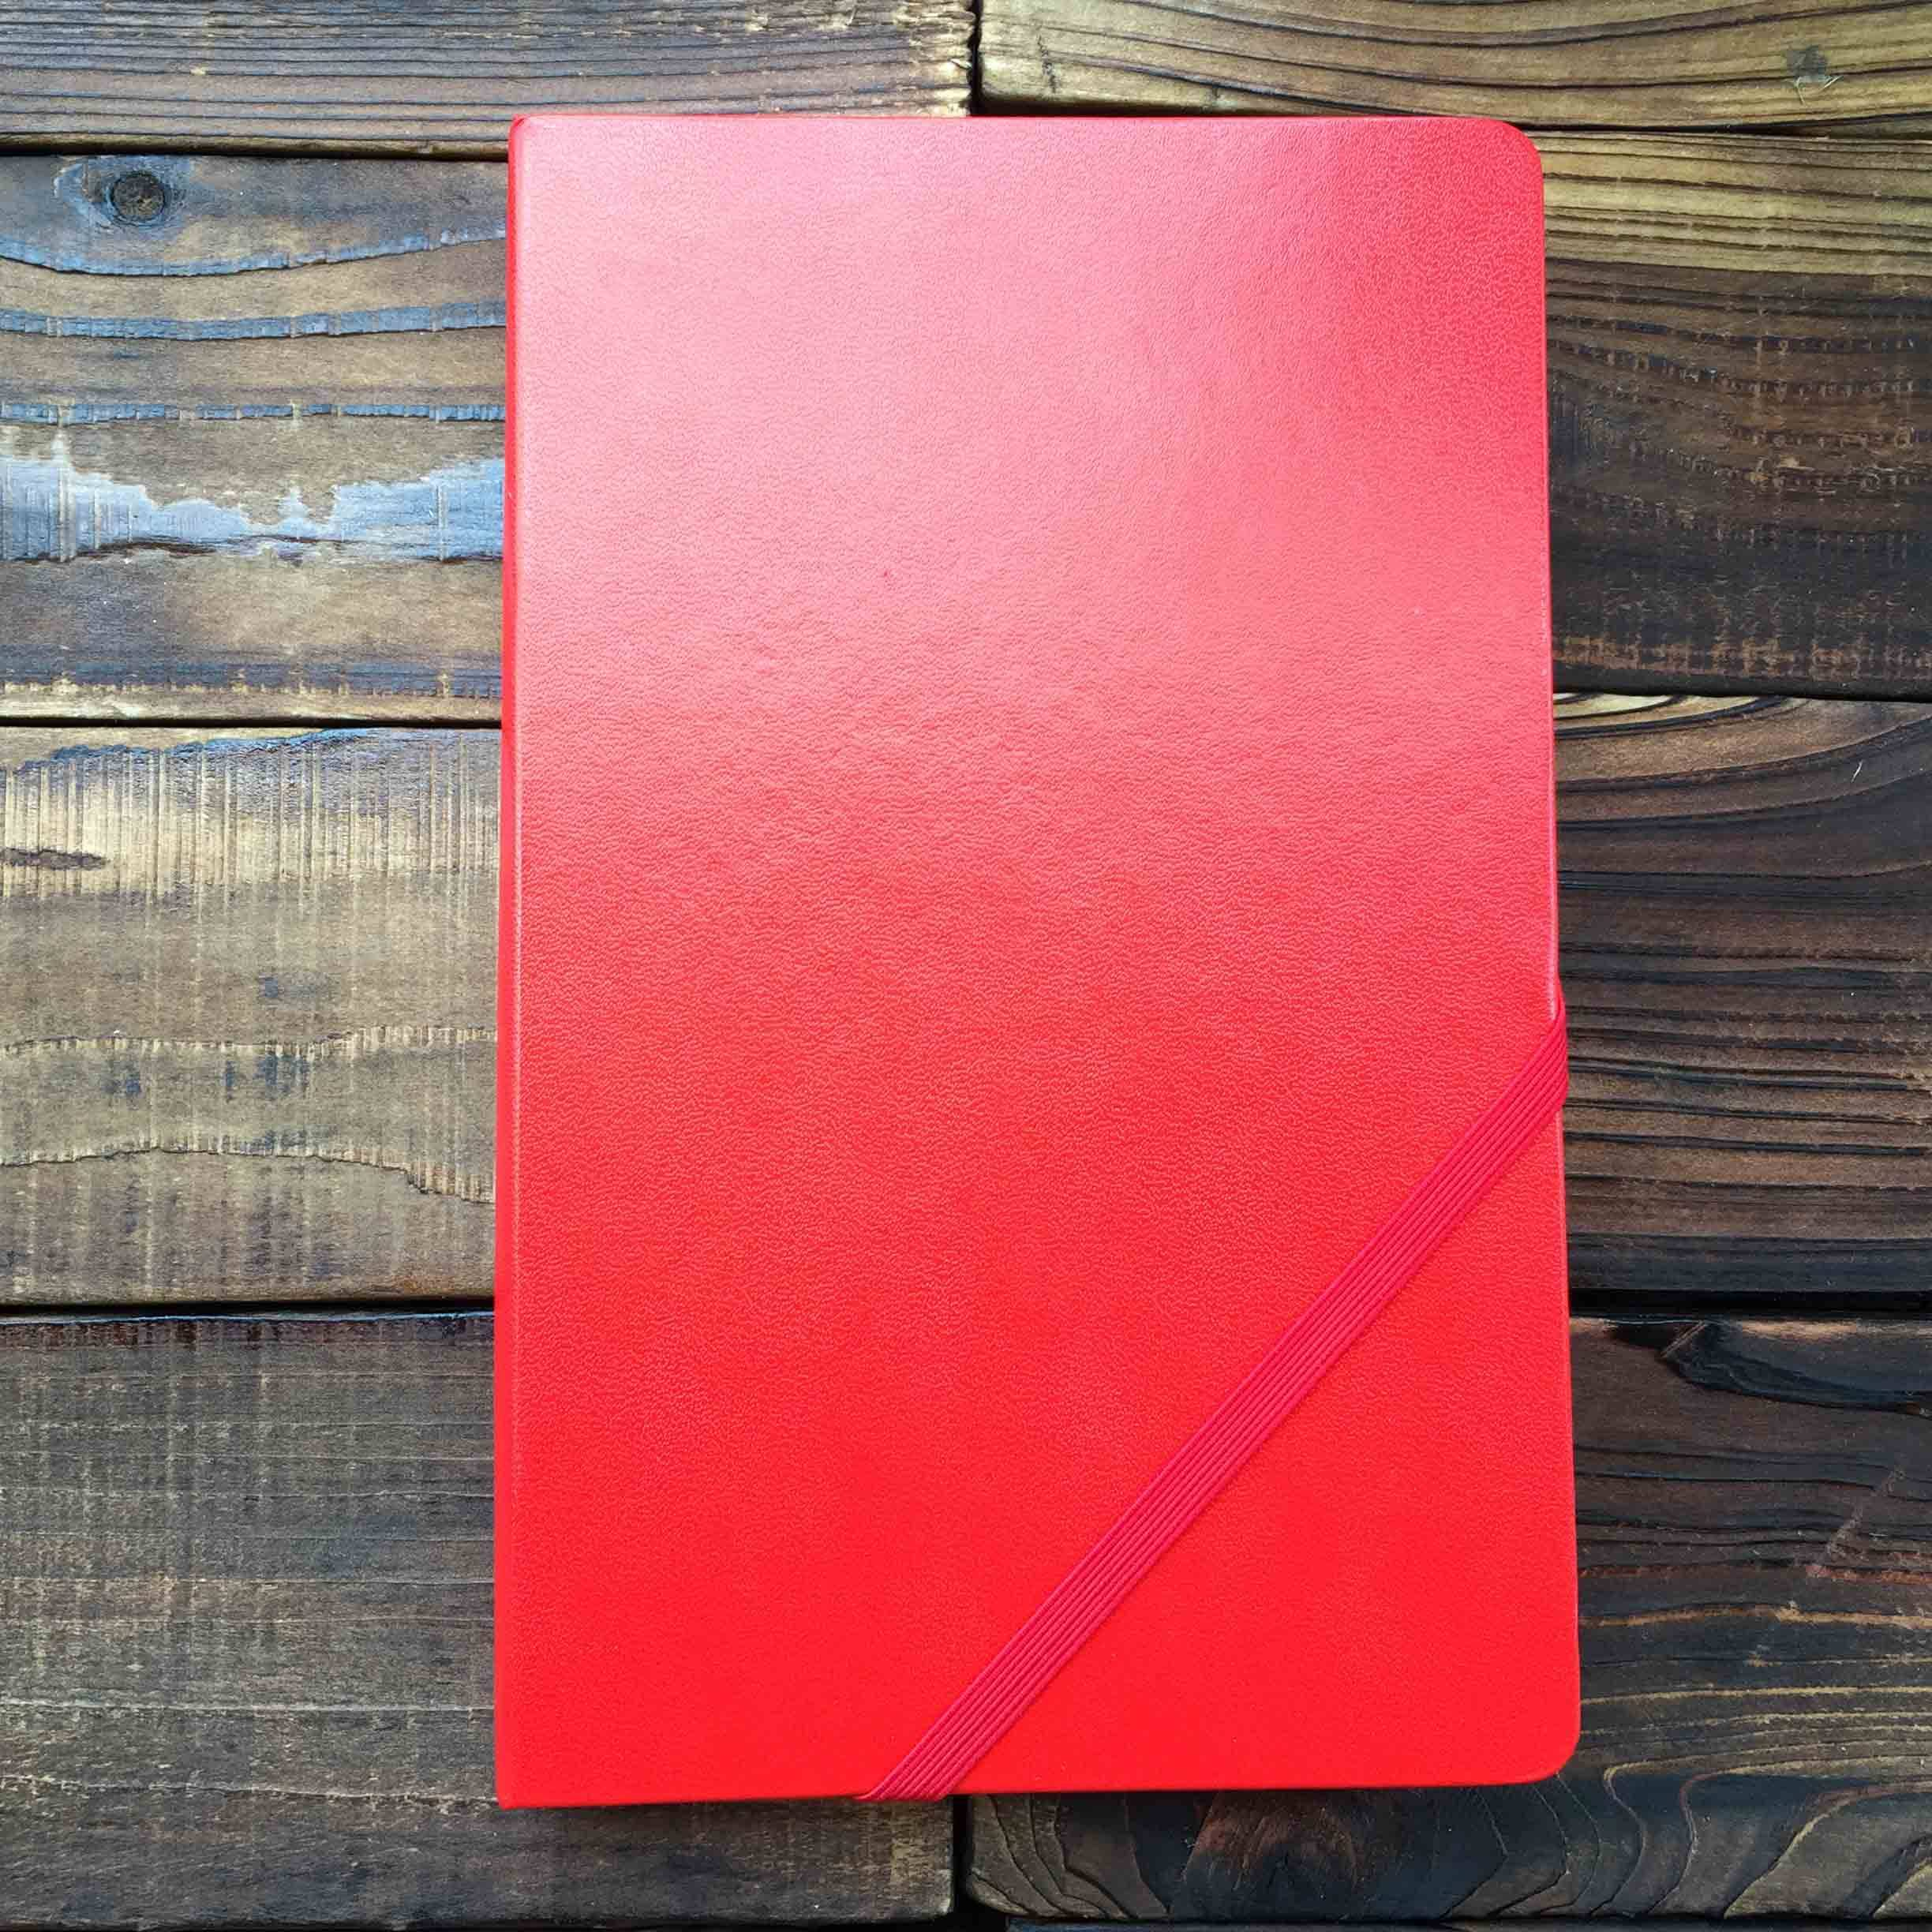 boke stationery produce a5 hardcover notebooks